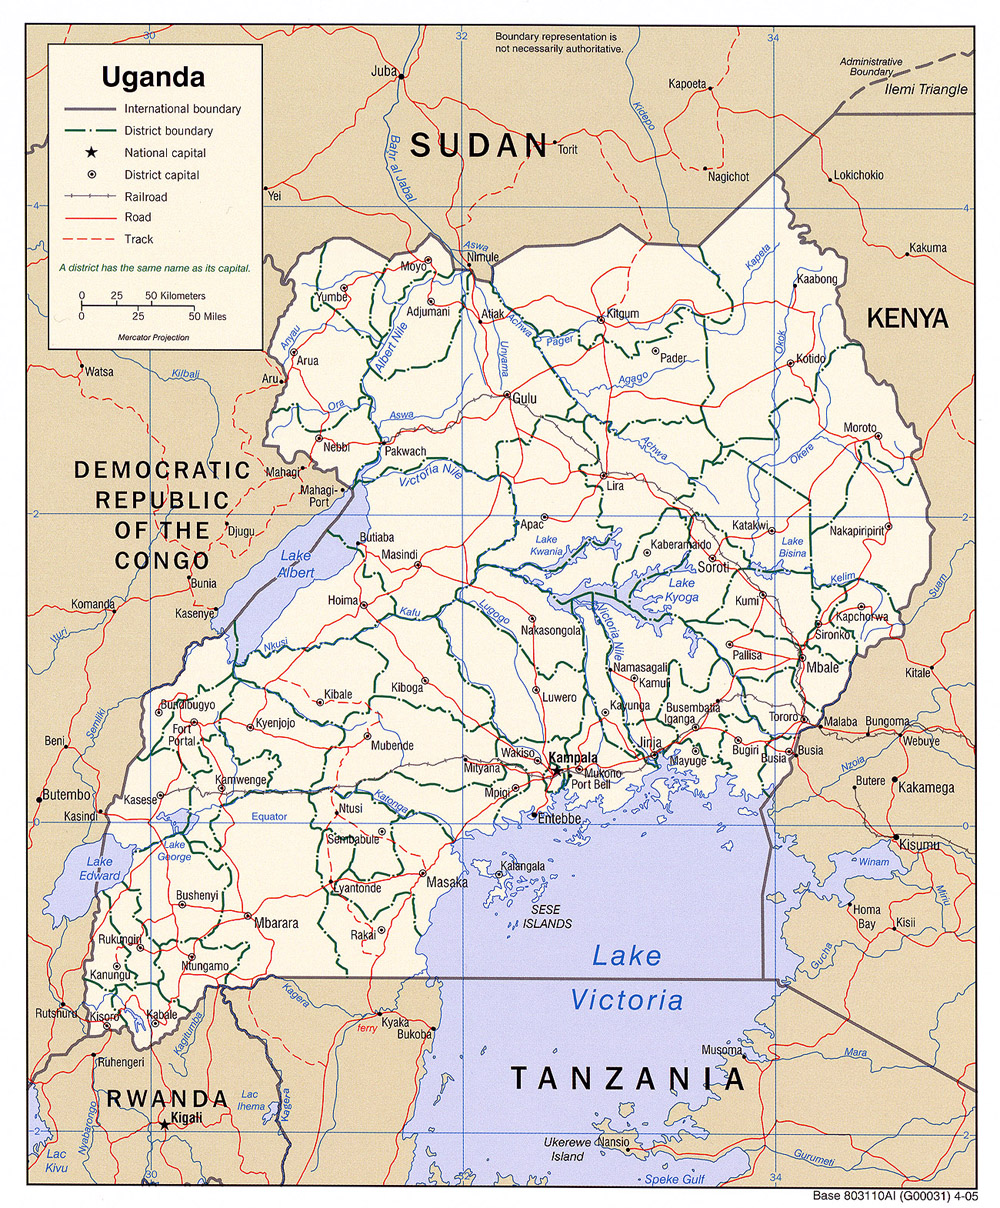 Map of Uganda / credit: Online source